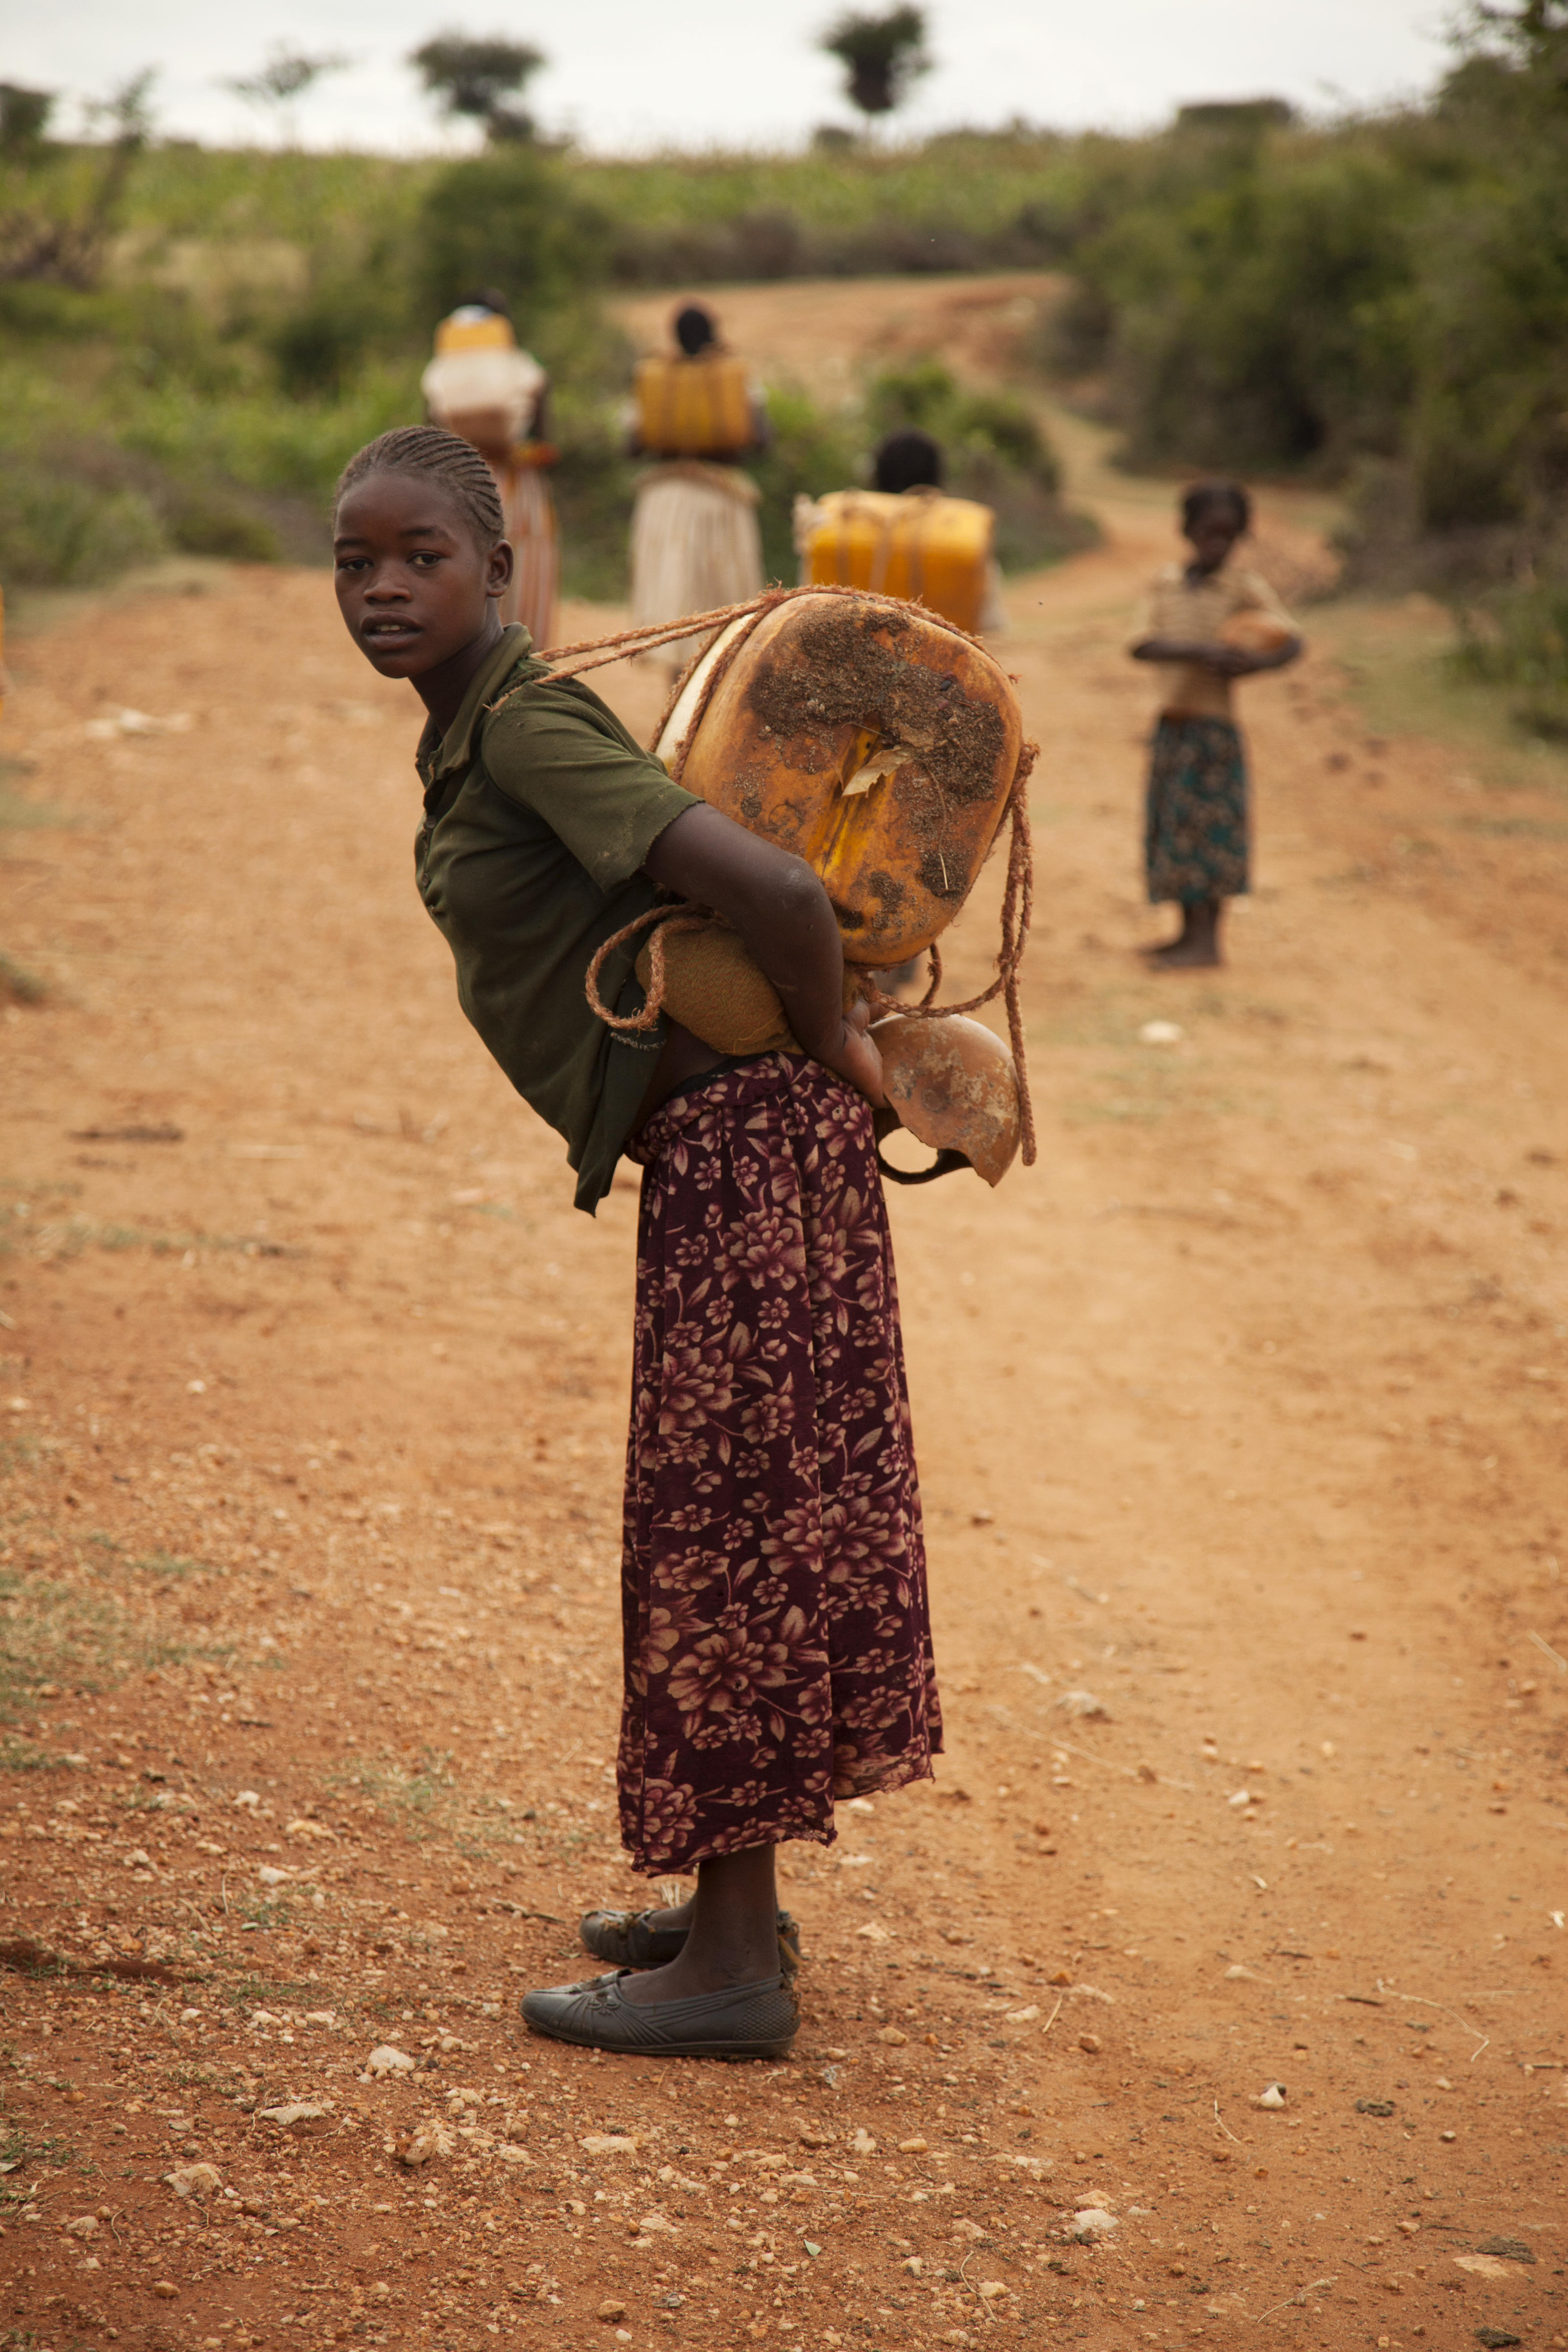 Kawesa Kalabo, around 13, with friends, carrying a jerrycan filled with dirty water back to the village, Lahyte, Ethiopia, 2012.